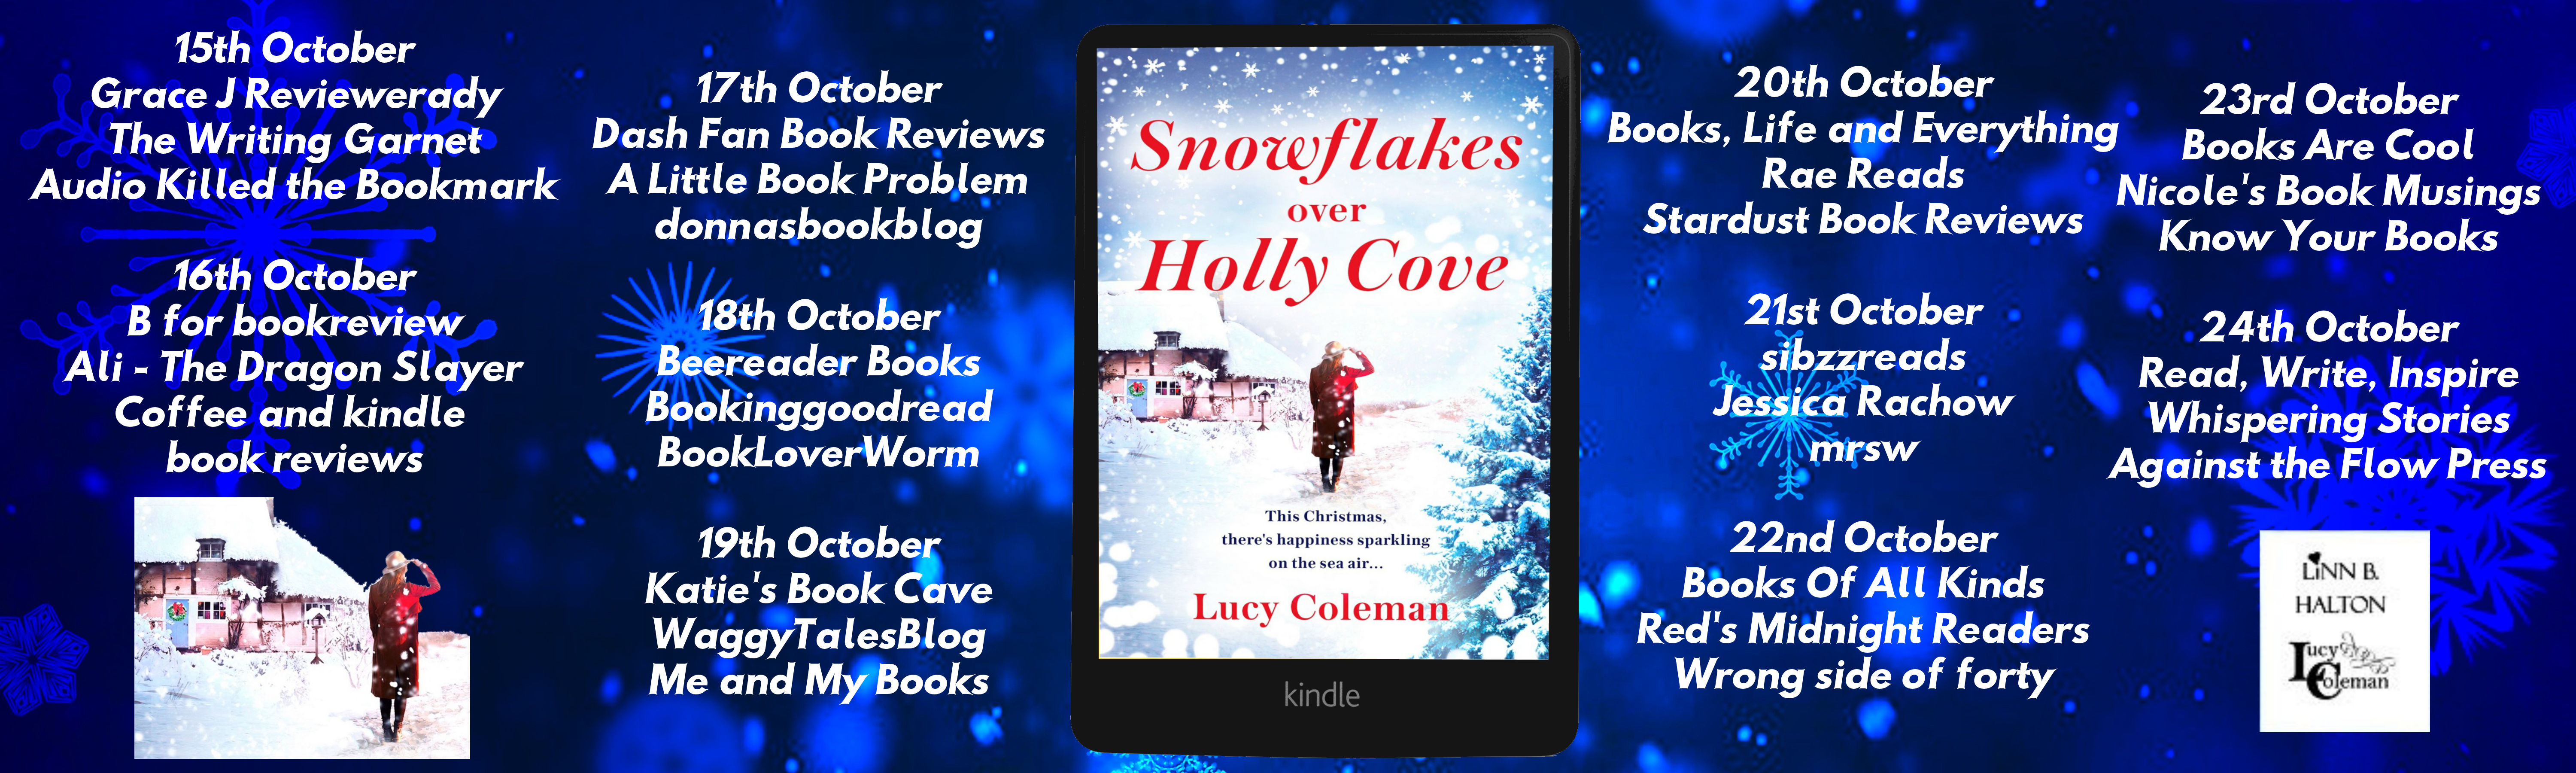 Snowflakes Over Holly Cove Full Tour Banner.jpg